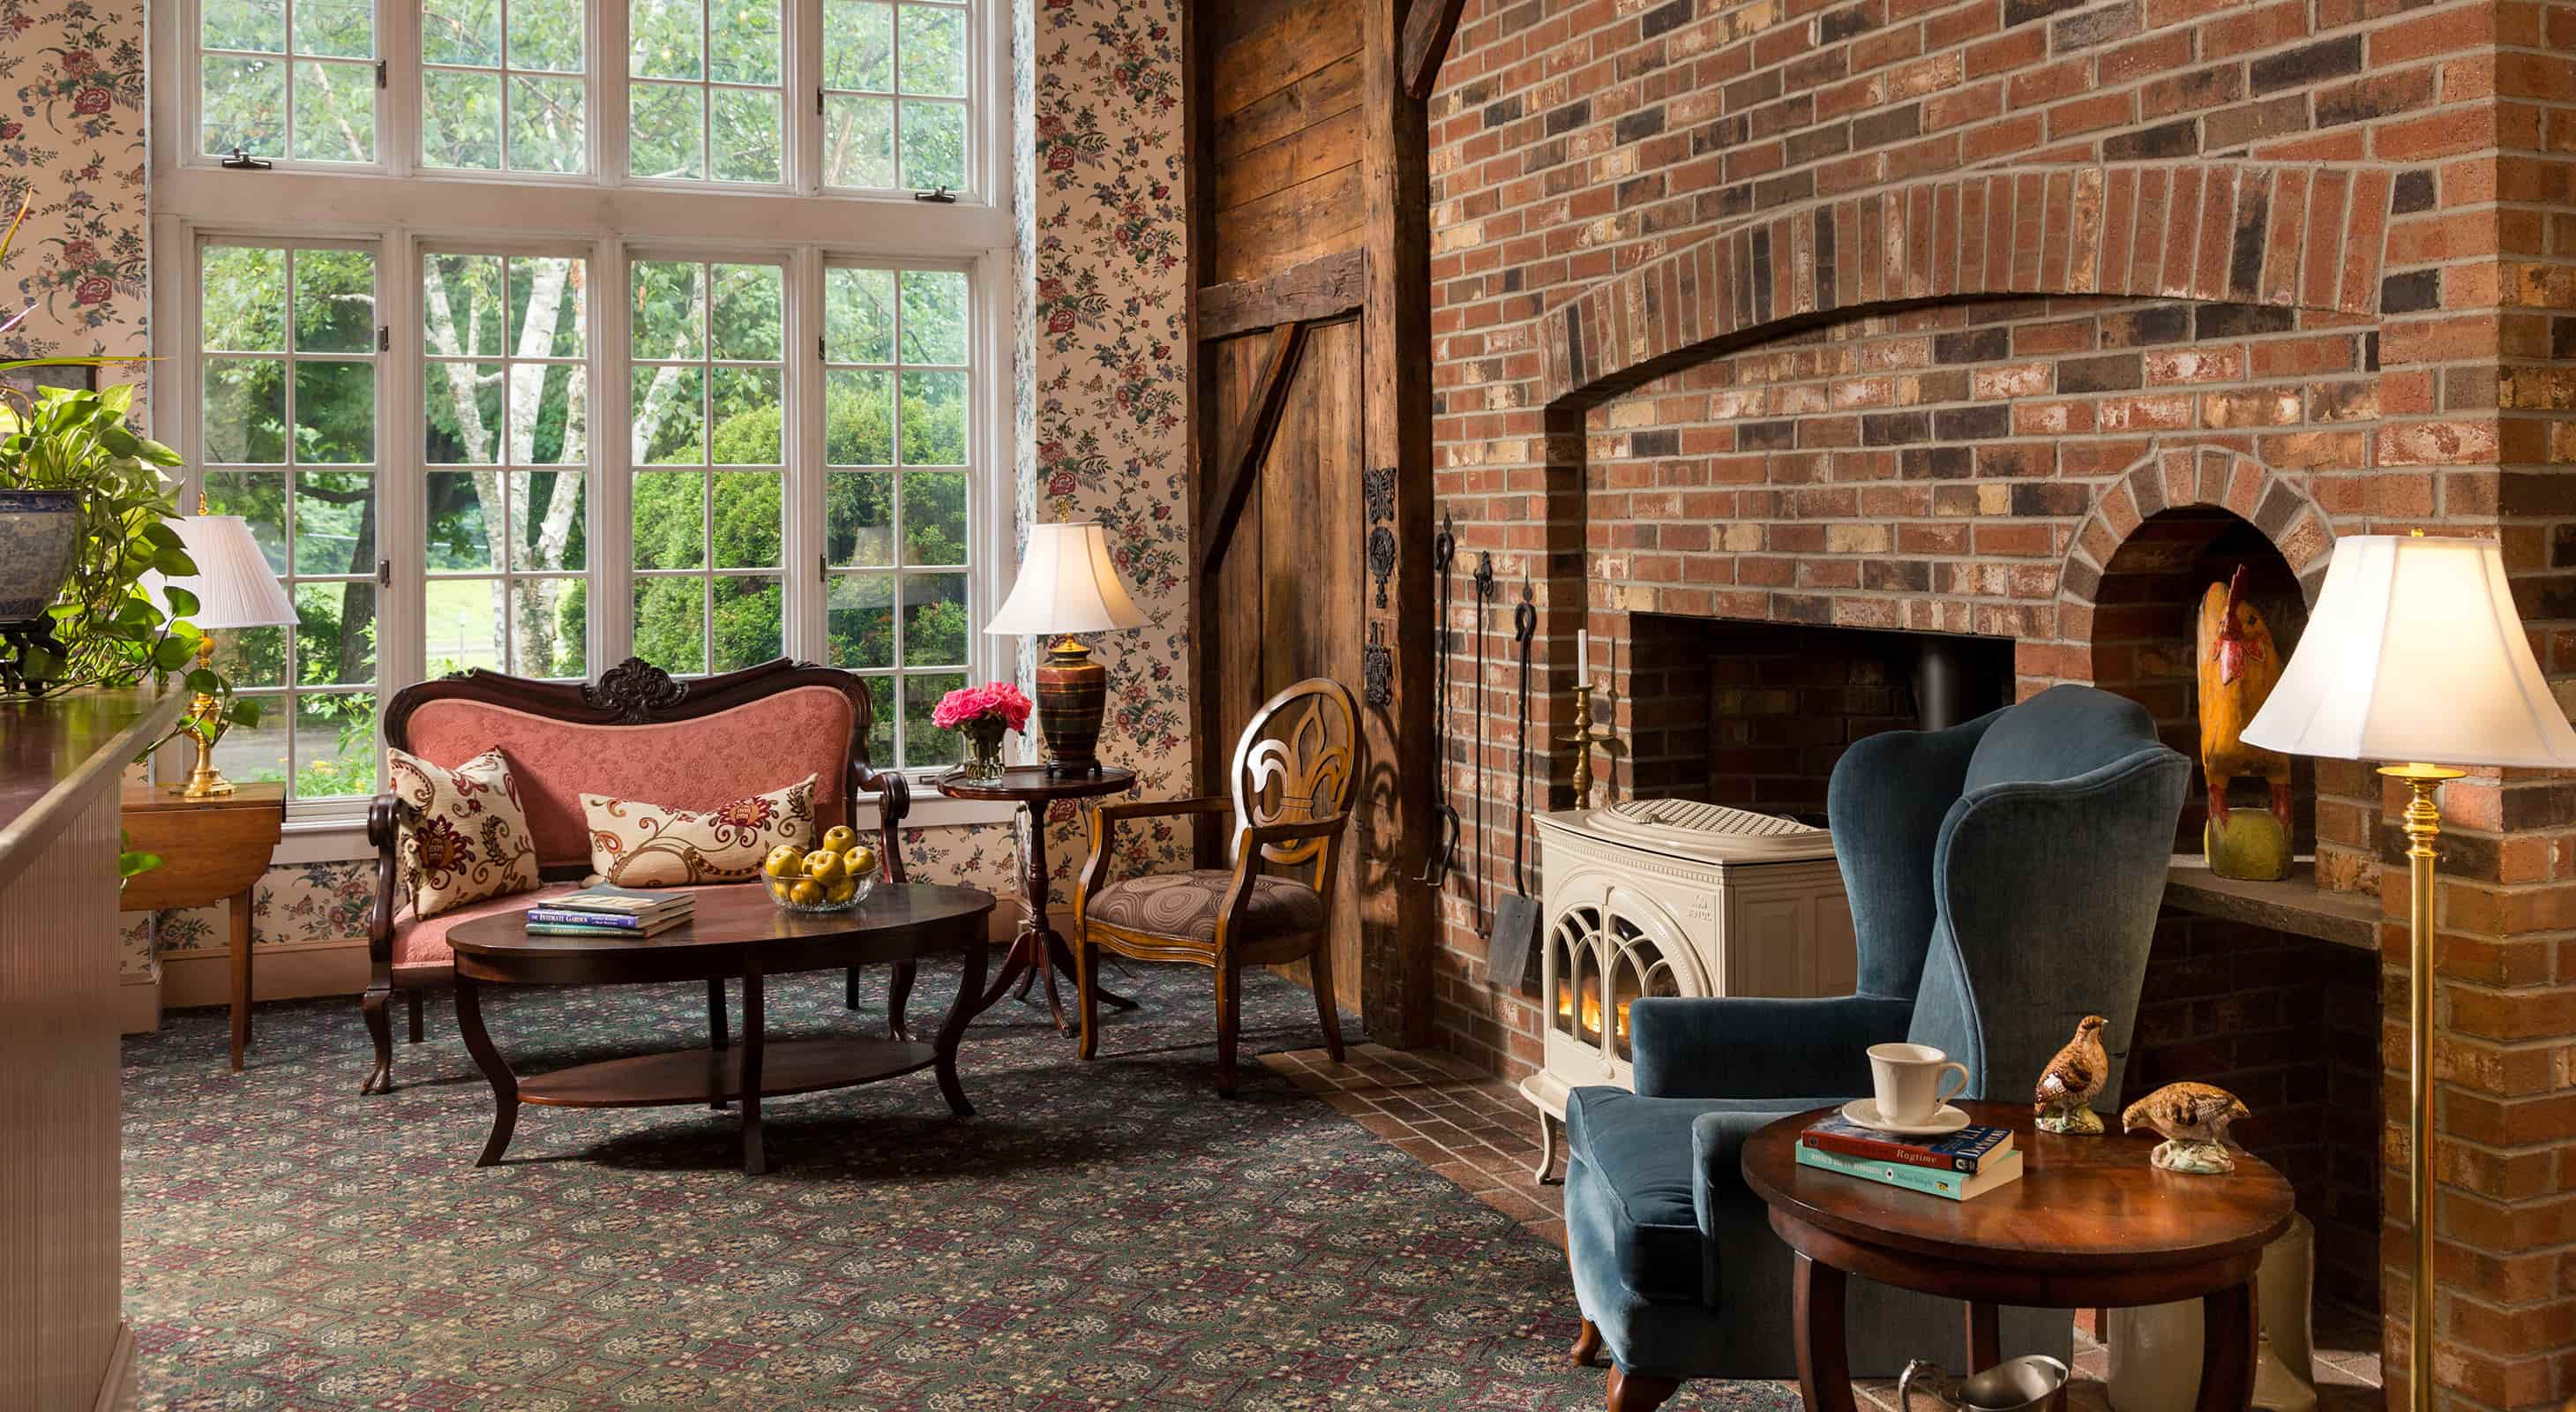 The Lobby of Chesterfield Inn with exposed brick and white stove, loveseat and chair